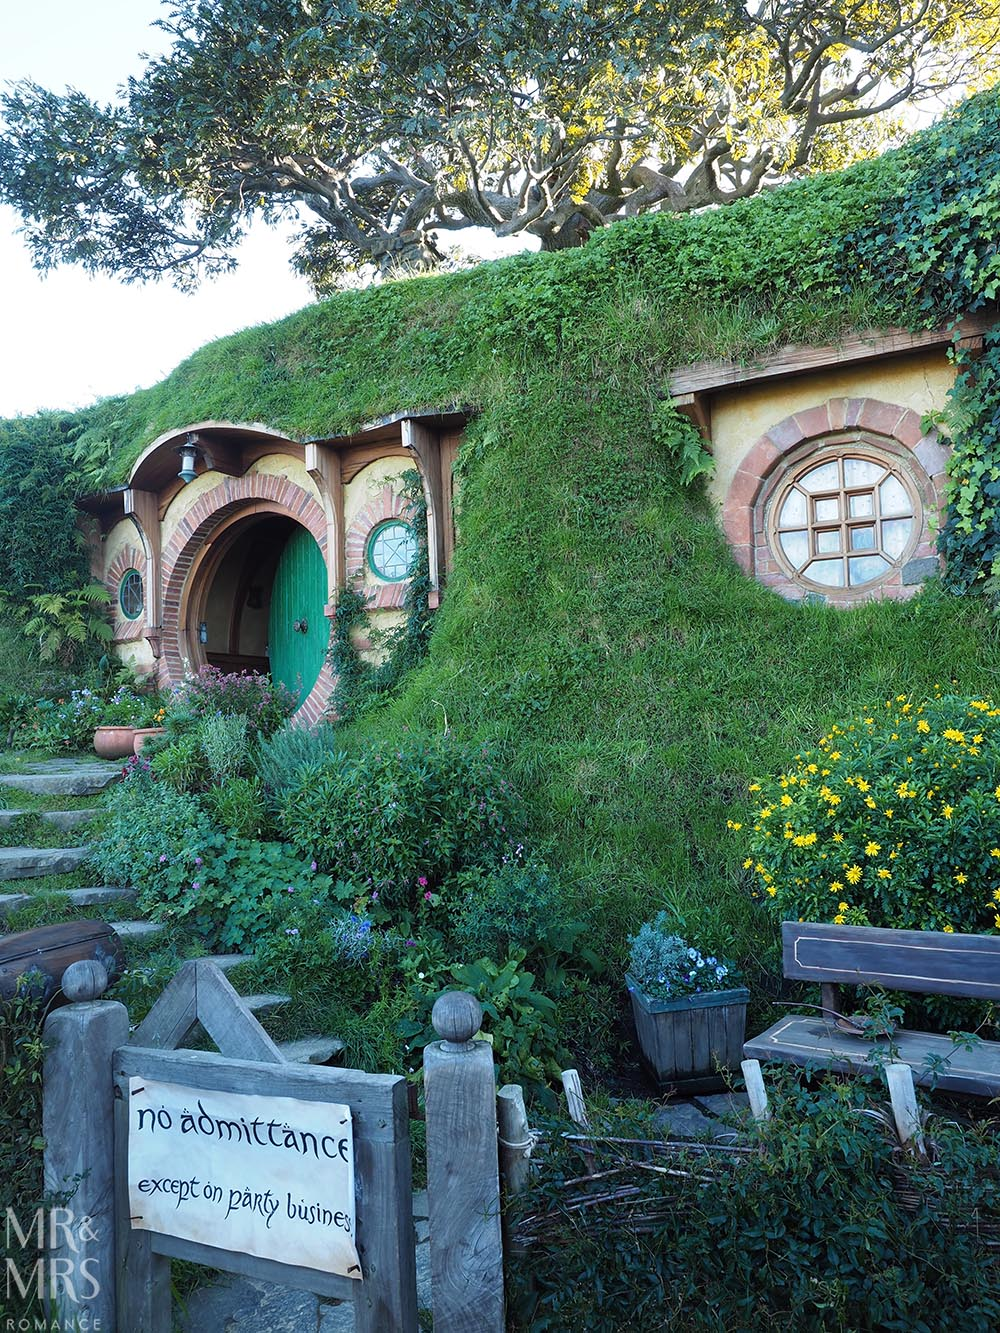 Hobbiton Movie Set, Waikato, New Zealand - Bag End